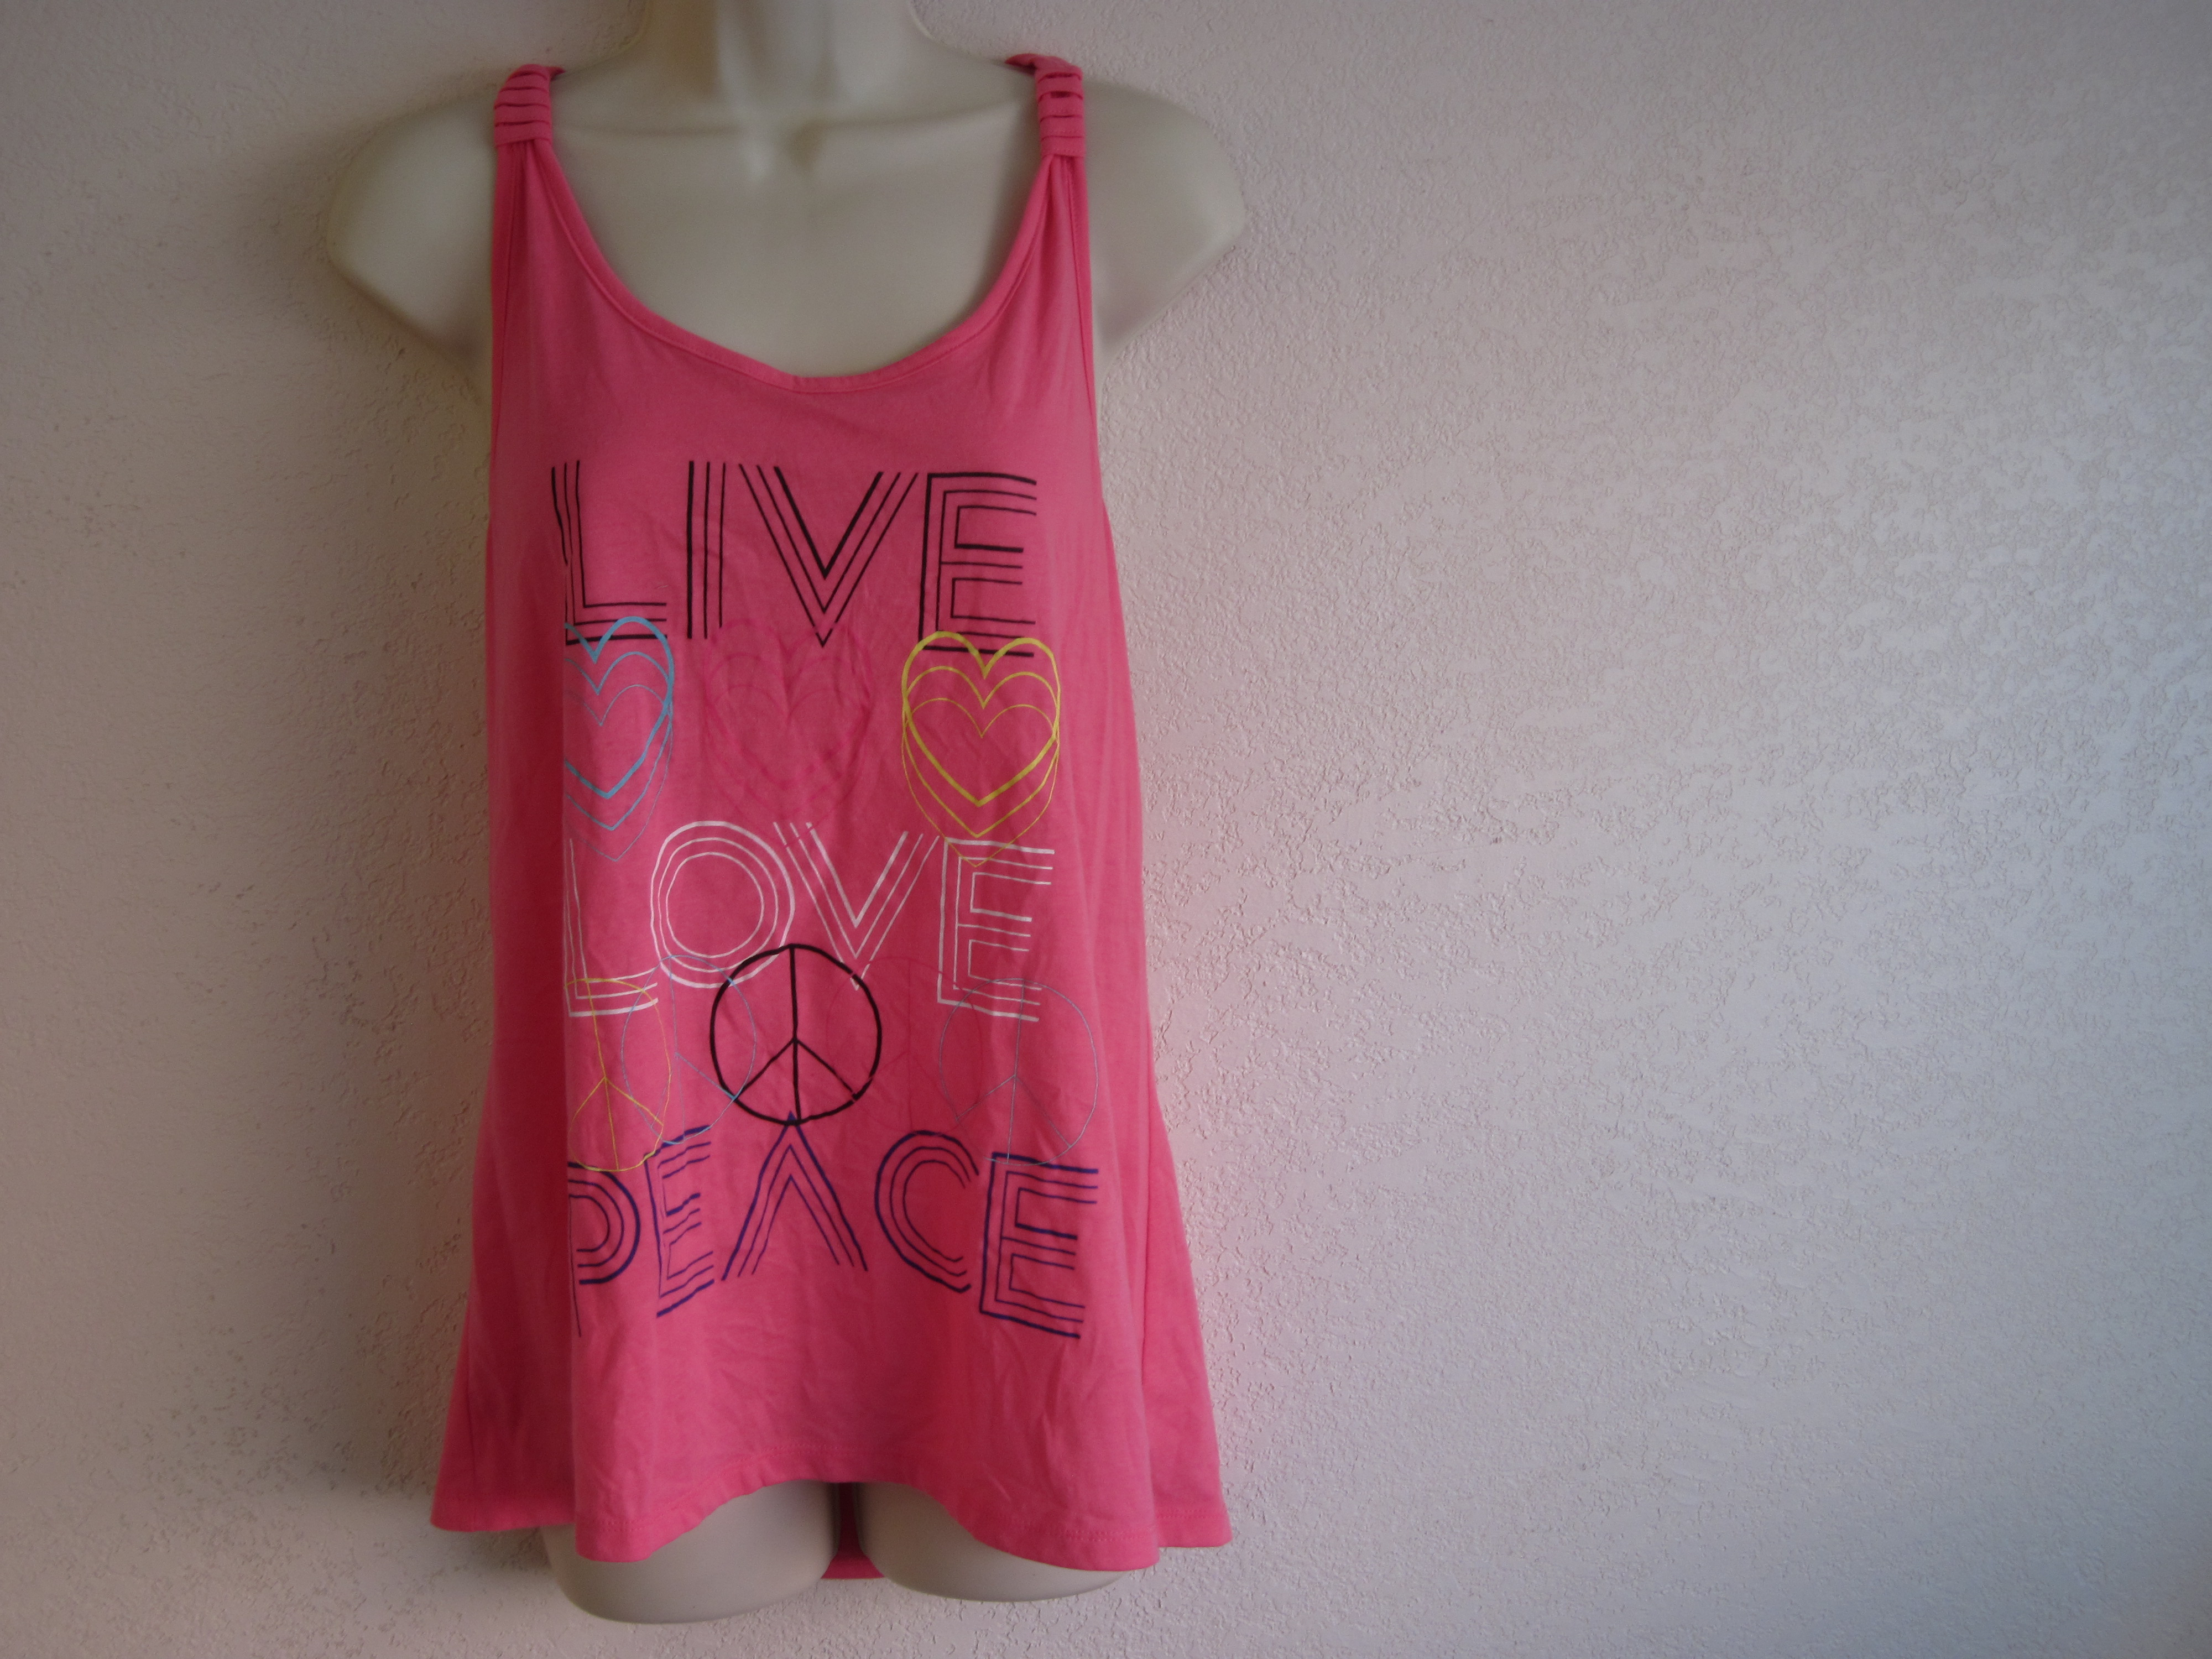 Joe Boxer Sz XL Tank Top (Live,Love, Peace) on Front Pink